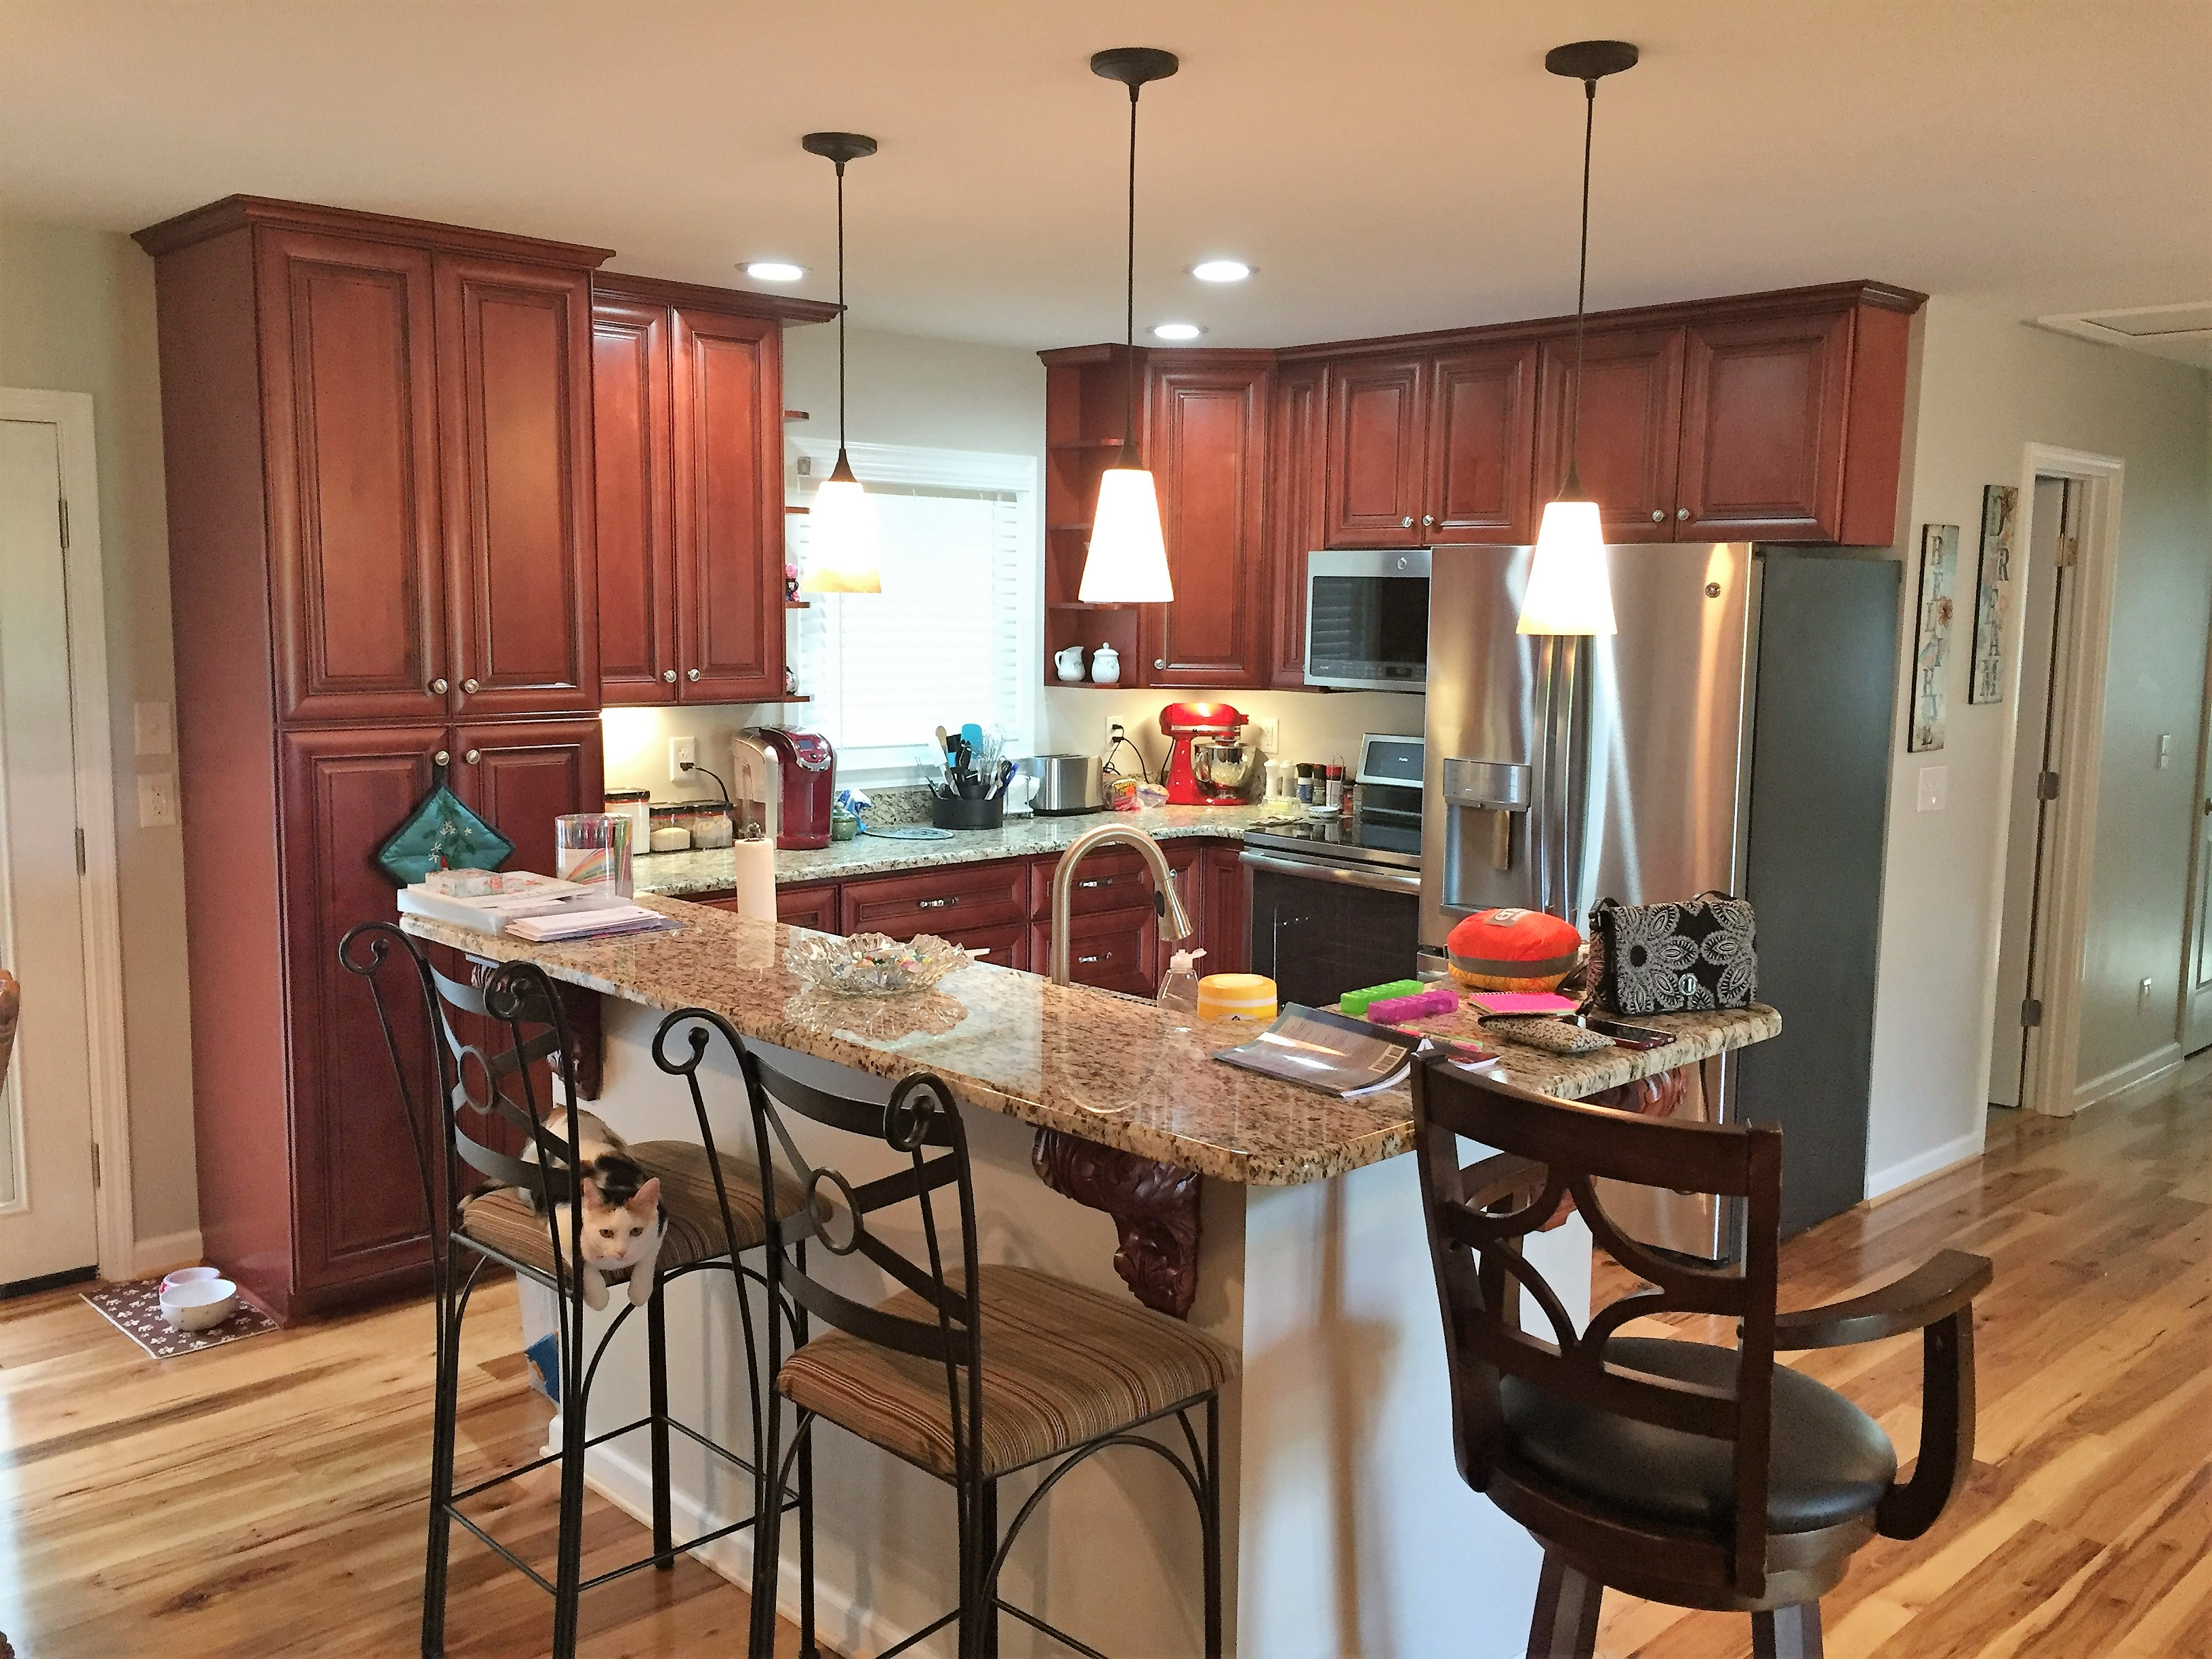 After Fire & Smoke Damage Restoration in Shelby NC - Kitchen